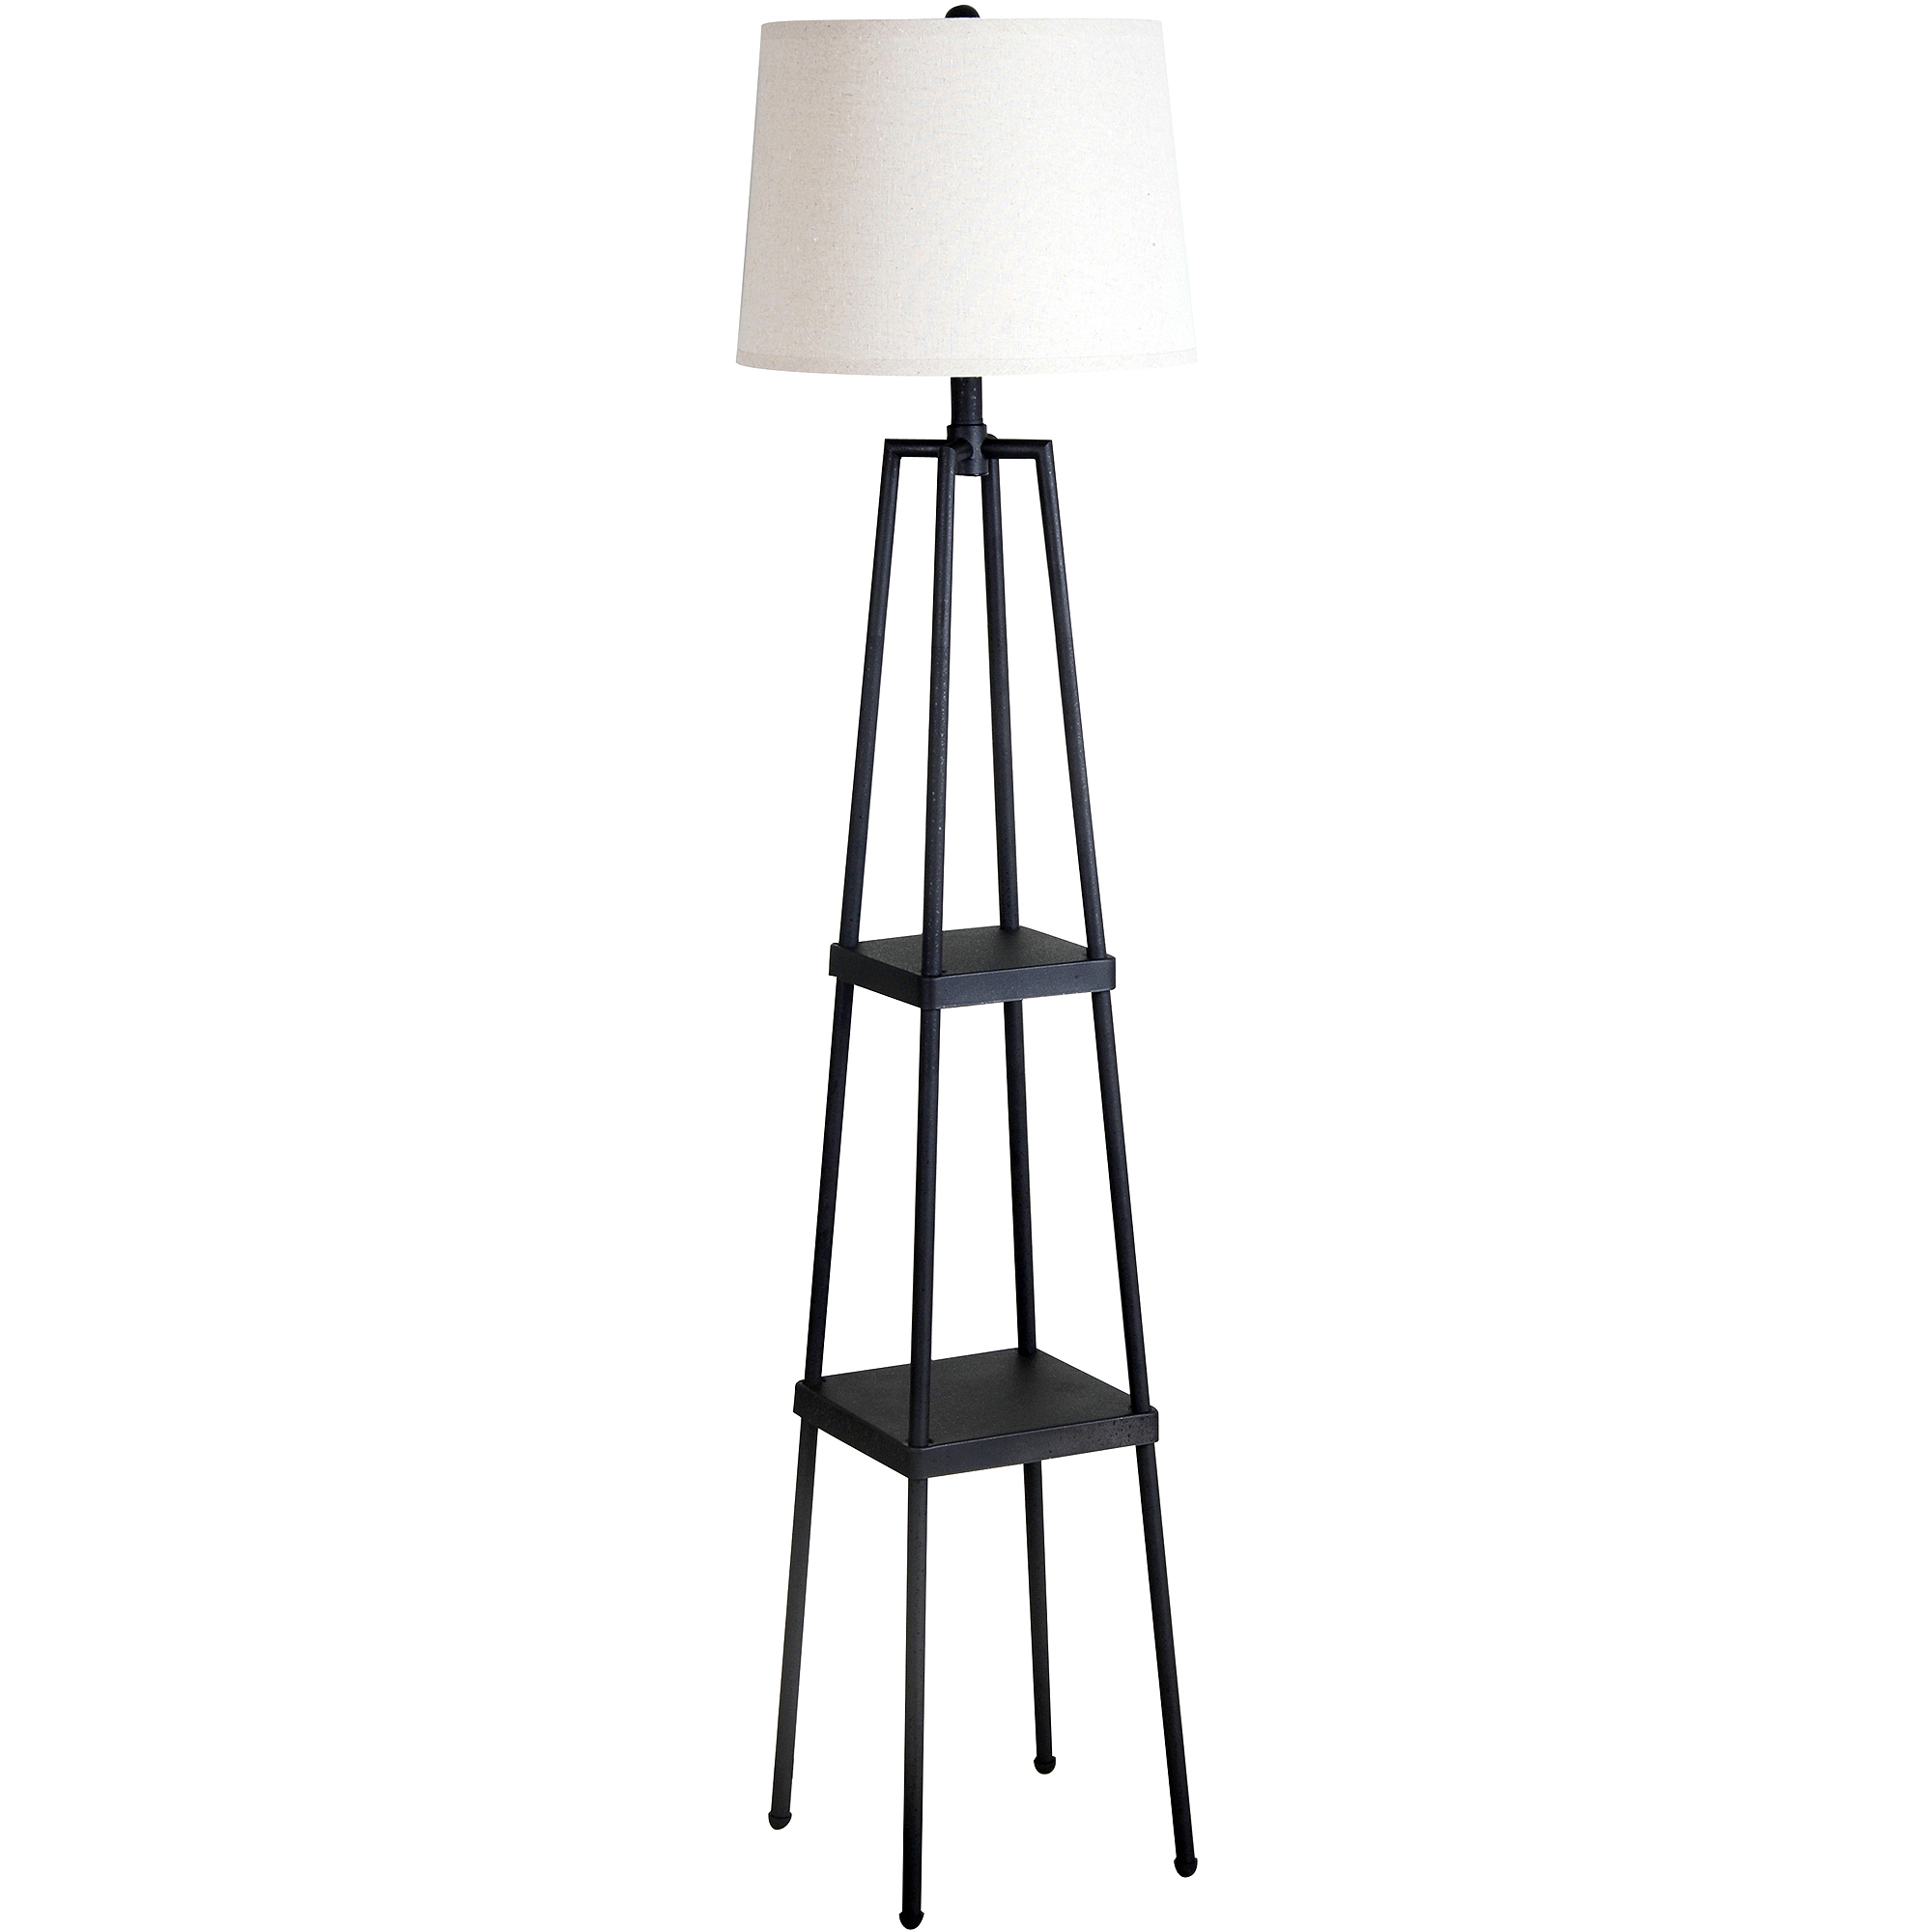 Mainstays Black Shelf Floor Lamp with White Shade On/Off